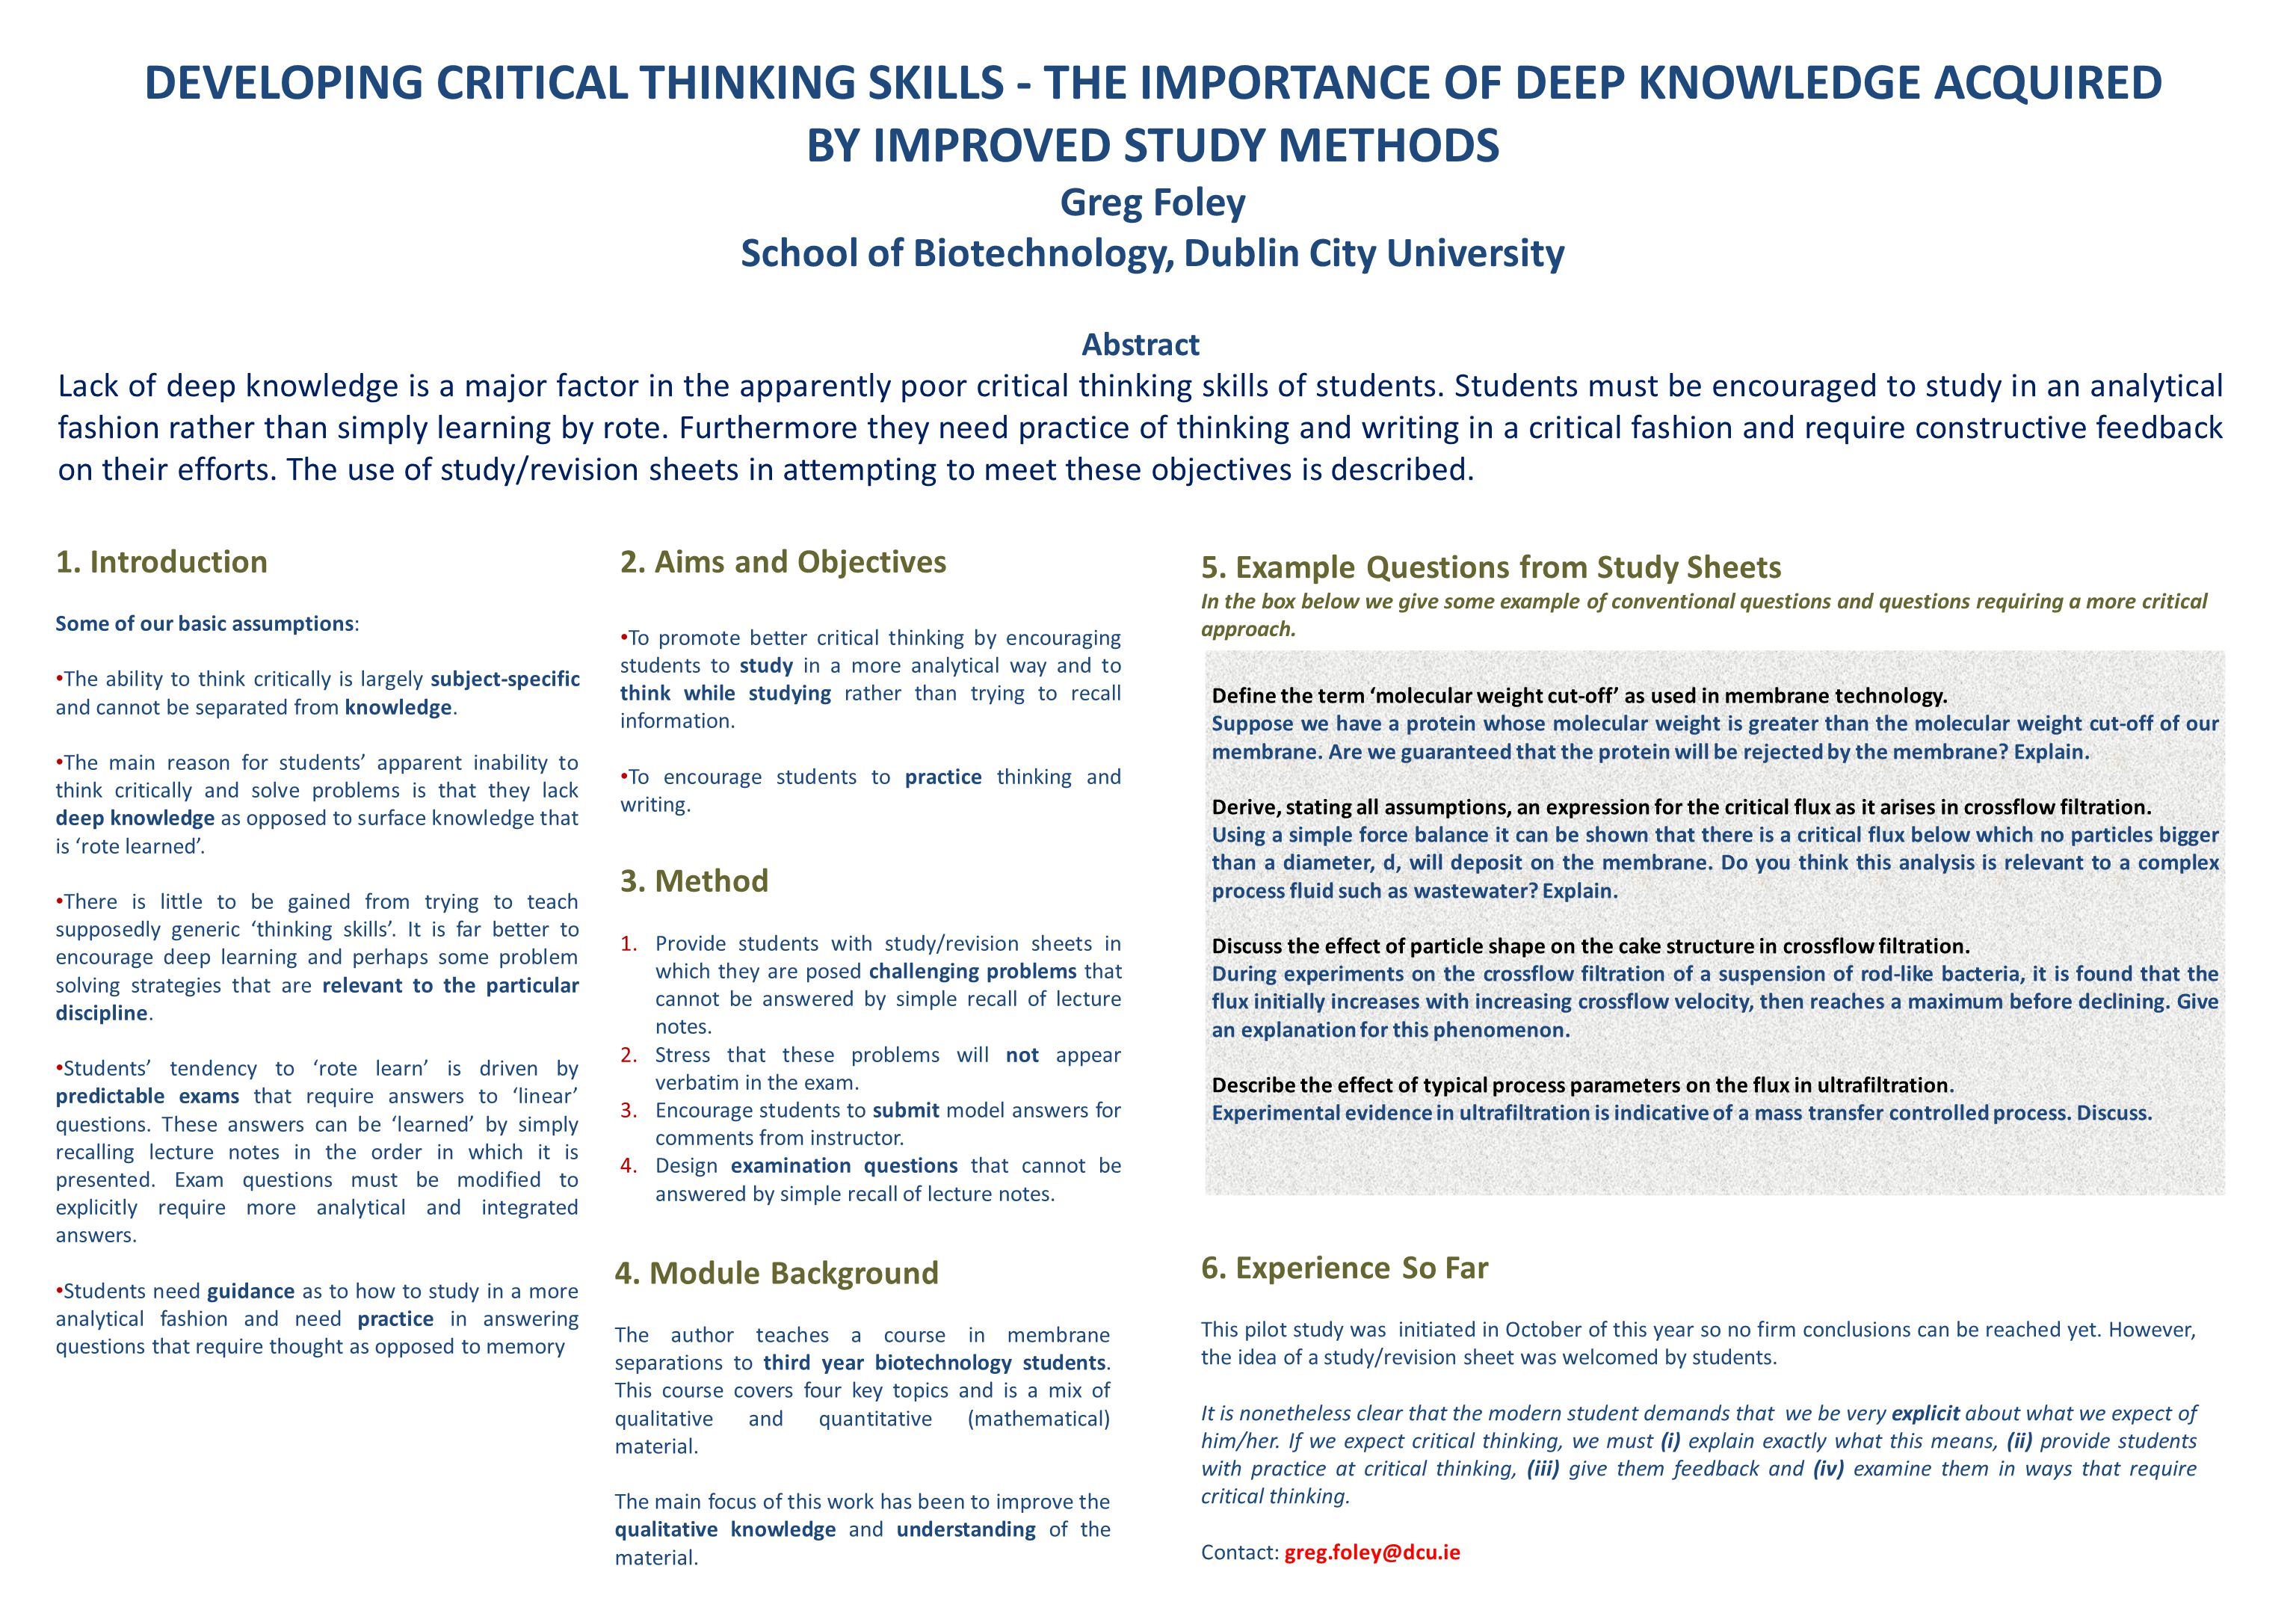 DEVELOPING CRITICAL THINKING SKILLS - THE IMPORTANCE OF DEEP KNOWLEDGE ACQUIRED BY IMPROVED STUDY METHODS Greg Foley School of Biotechnology, Dublin City University Abstract Lack of deep knowledge is a major factor in the apparently poor critical thinking skills of students.